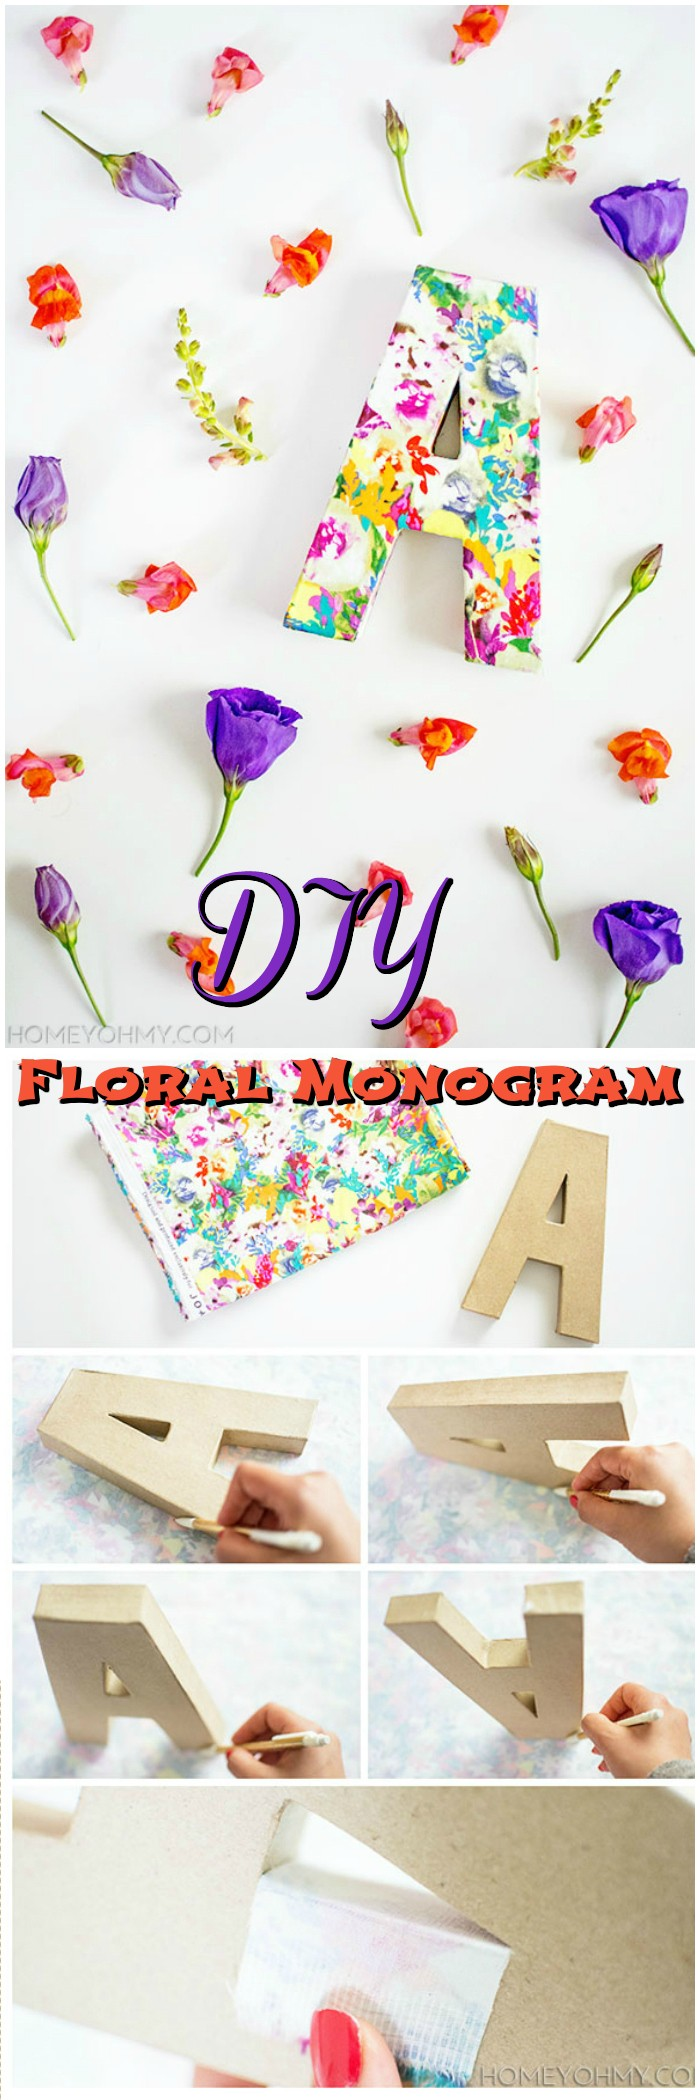 DIY Floral Monogram Dollar Store Home Organizing Ideas